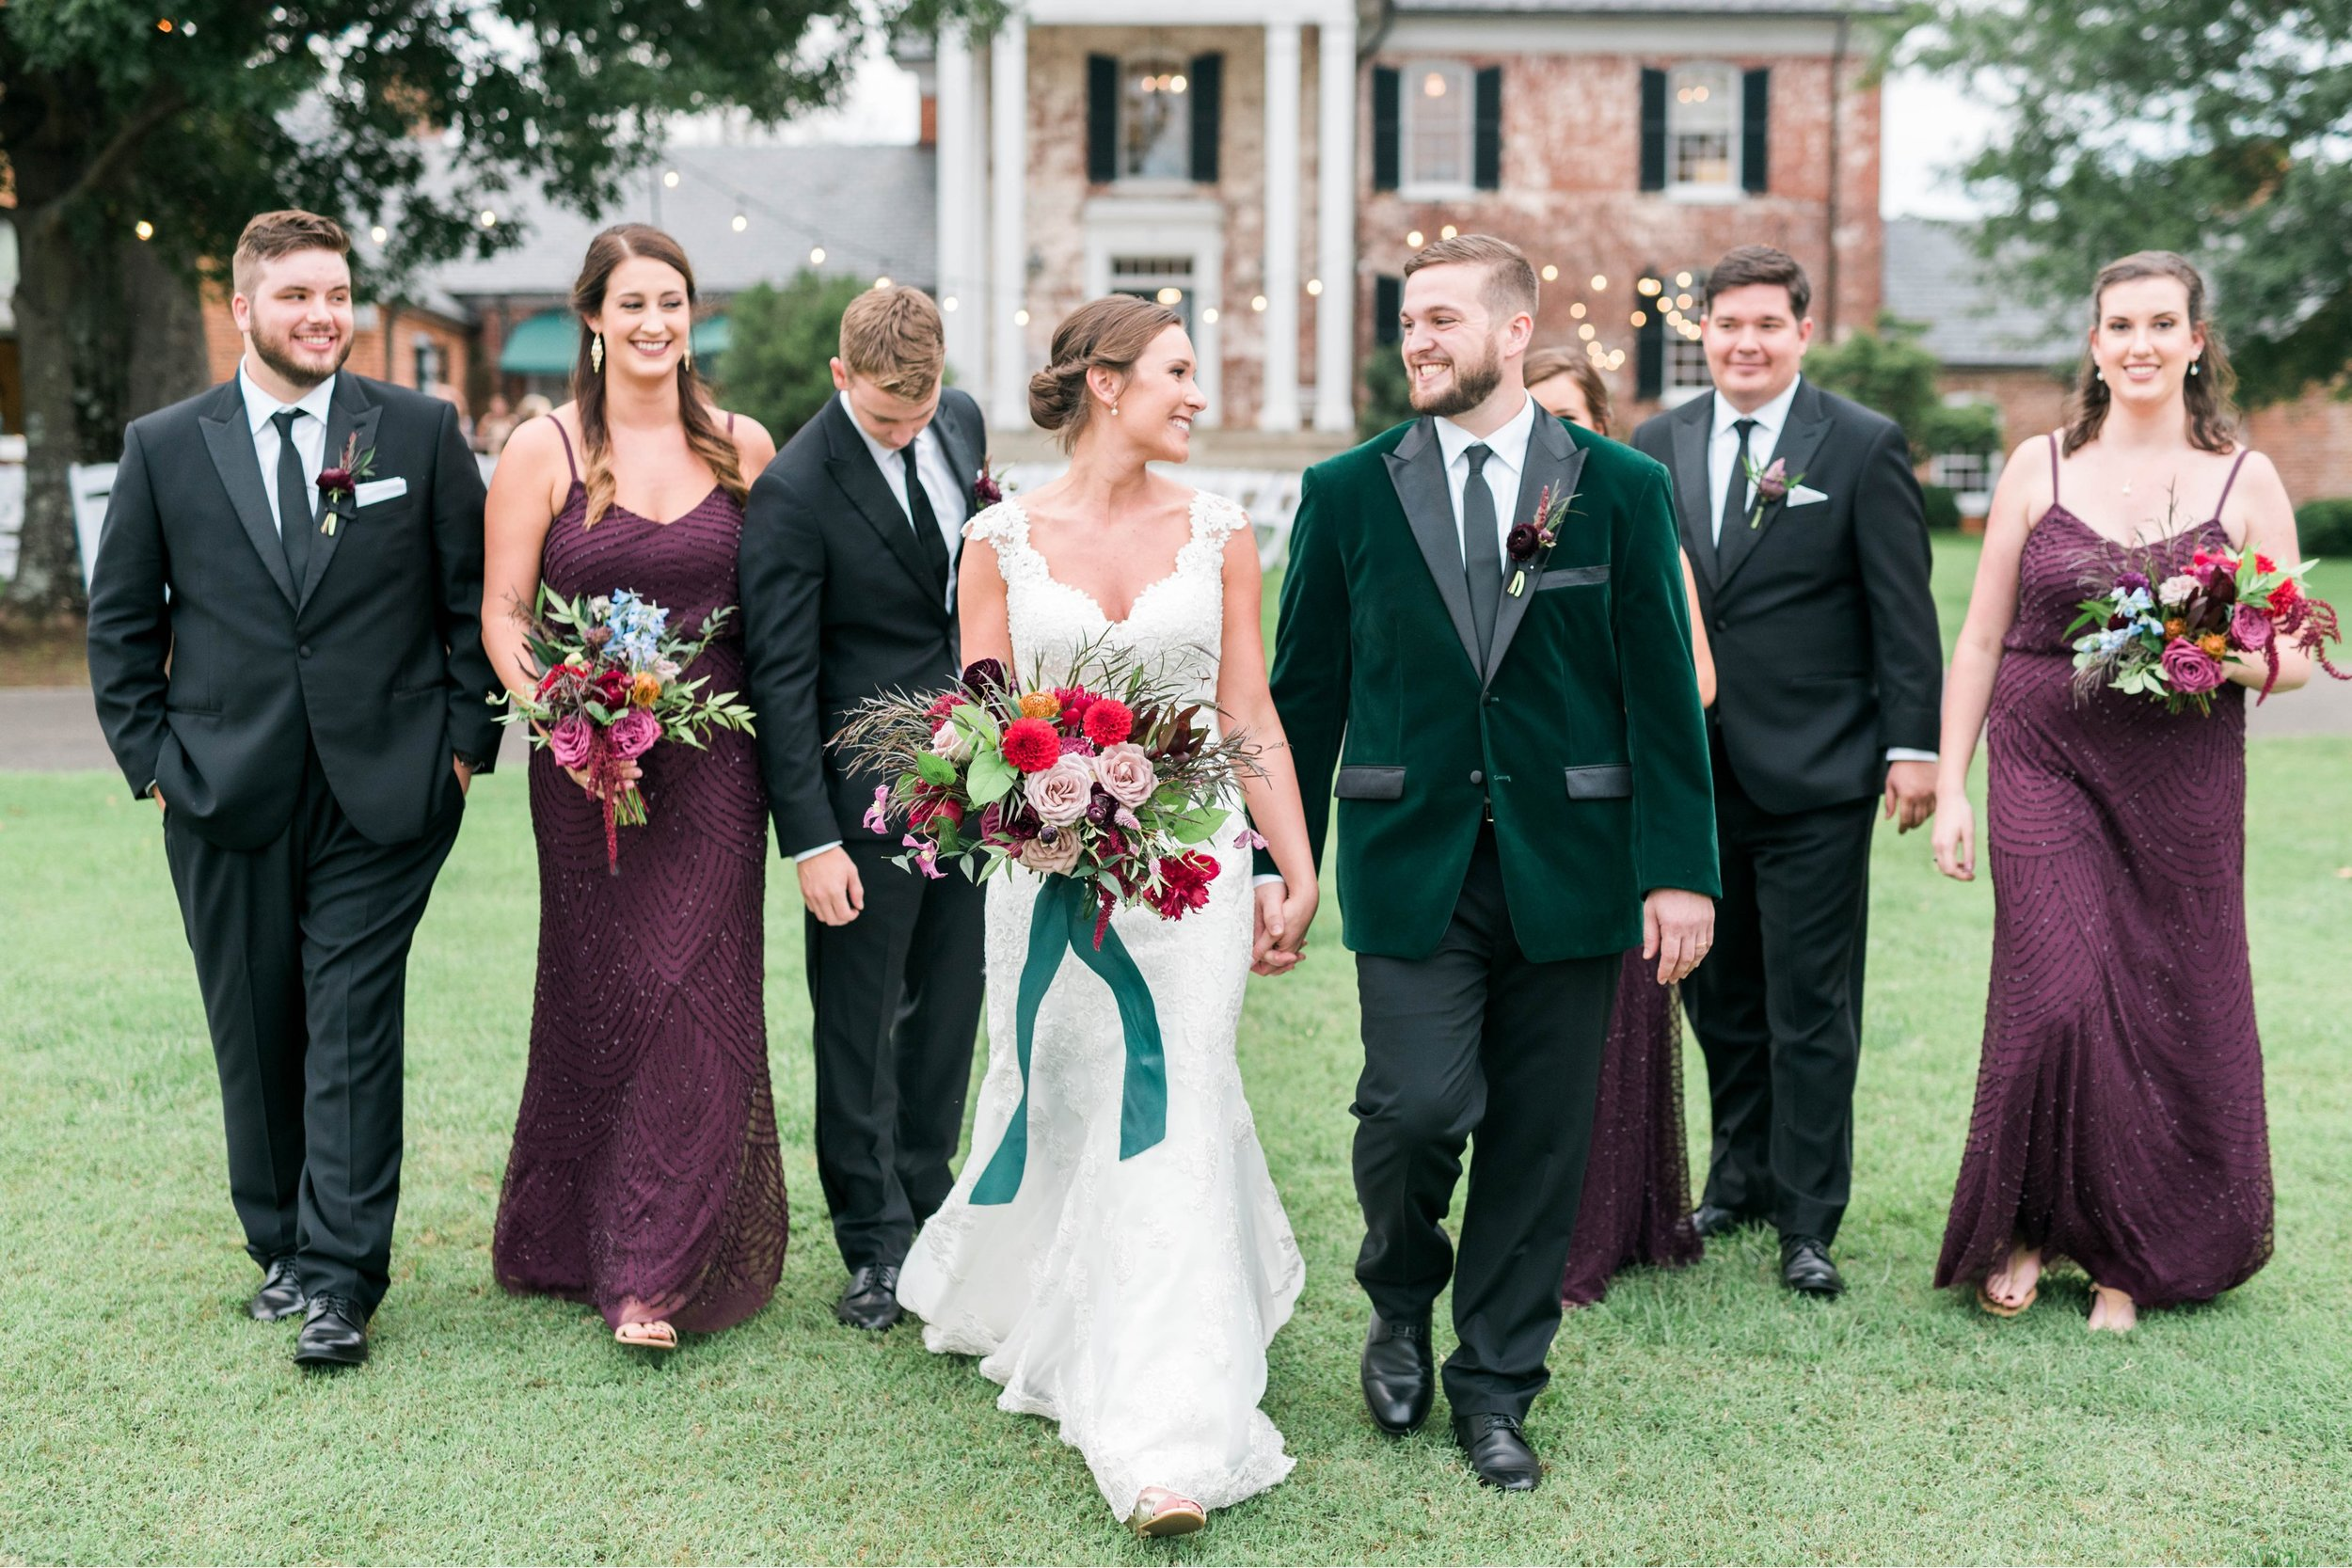 Gordan+Lauren_BoonsboroCountryClubWedding_Virginiaweddingphotographer_LynchburgVi 14.jpg